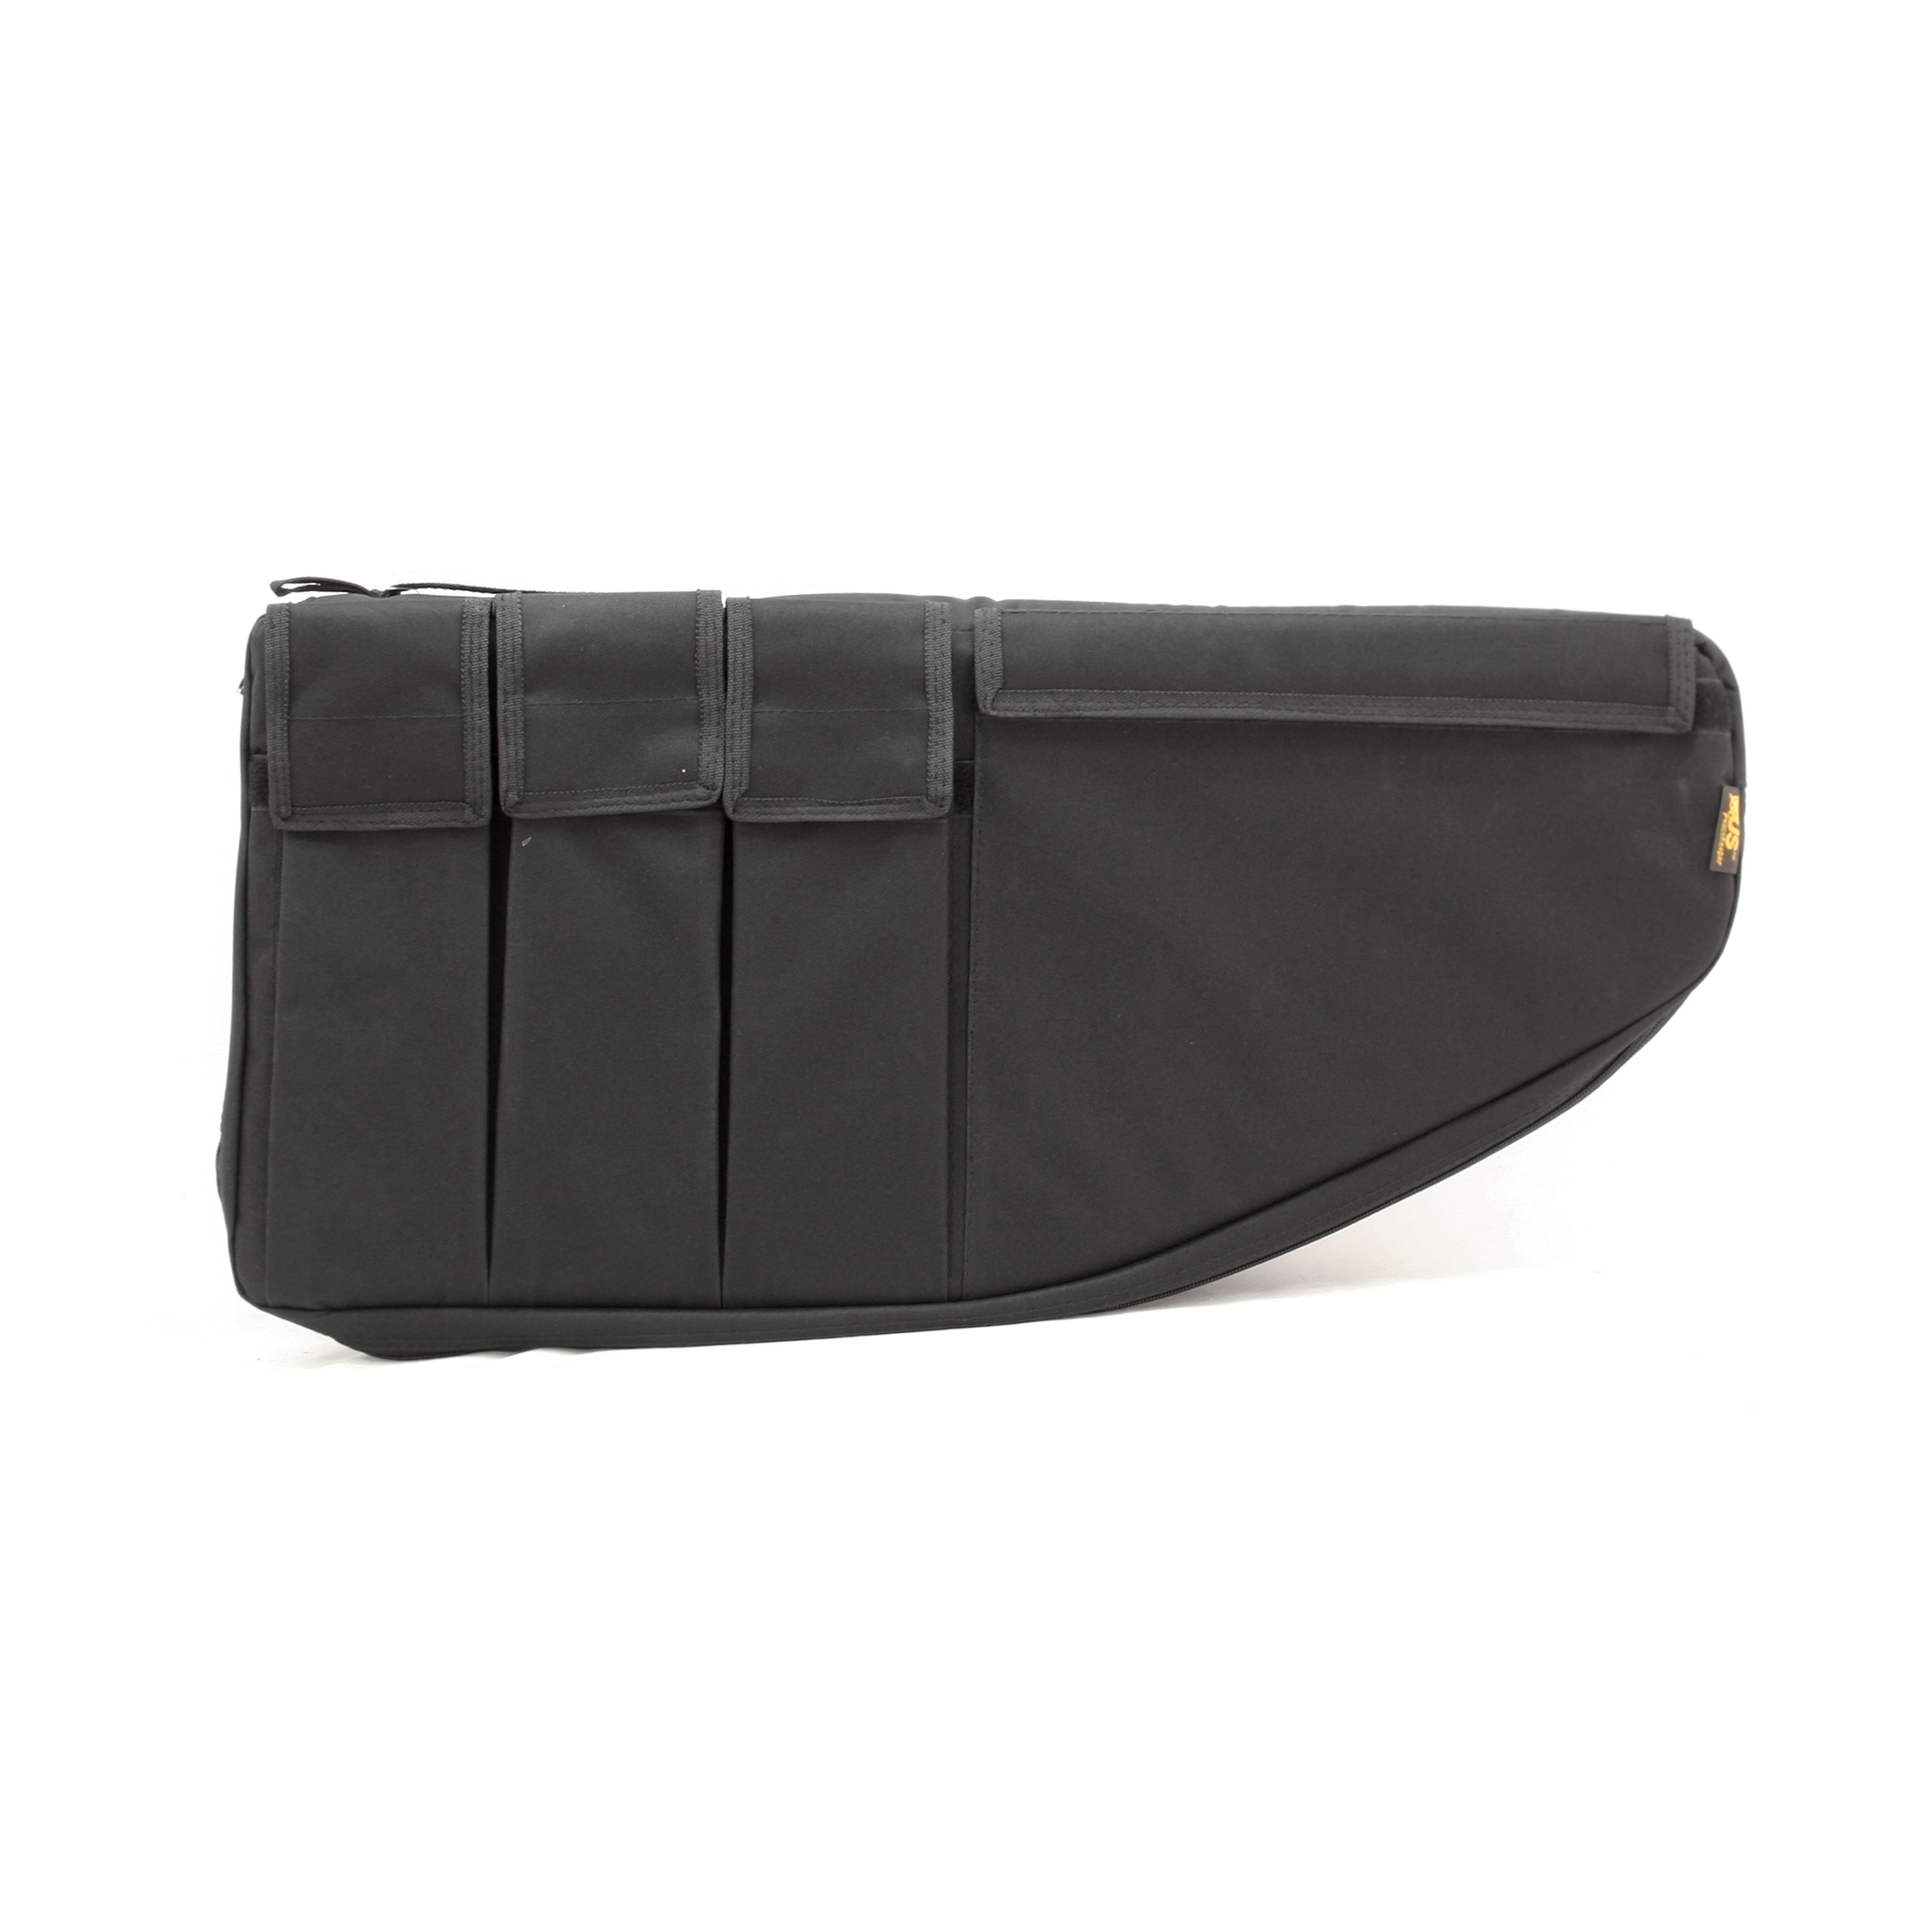 """This case is designed with a dual purpose. It is designed to accommodate most popular pistol caliber sub-machine guns with magazines attached or it can accommodate most short-barreled AR-type rifles with an overall length of 25"""" or less. Exterior pockets for magazines and other gear."""